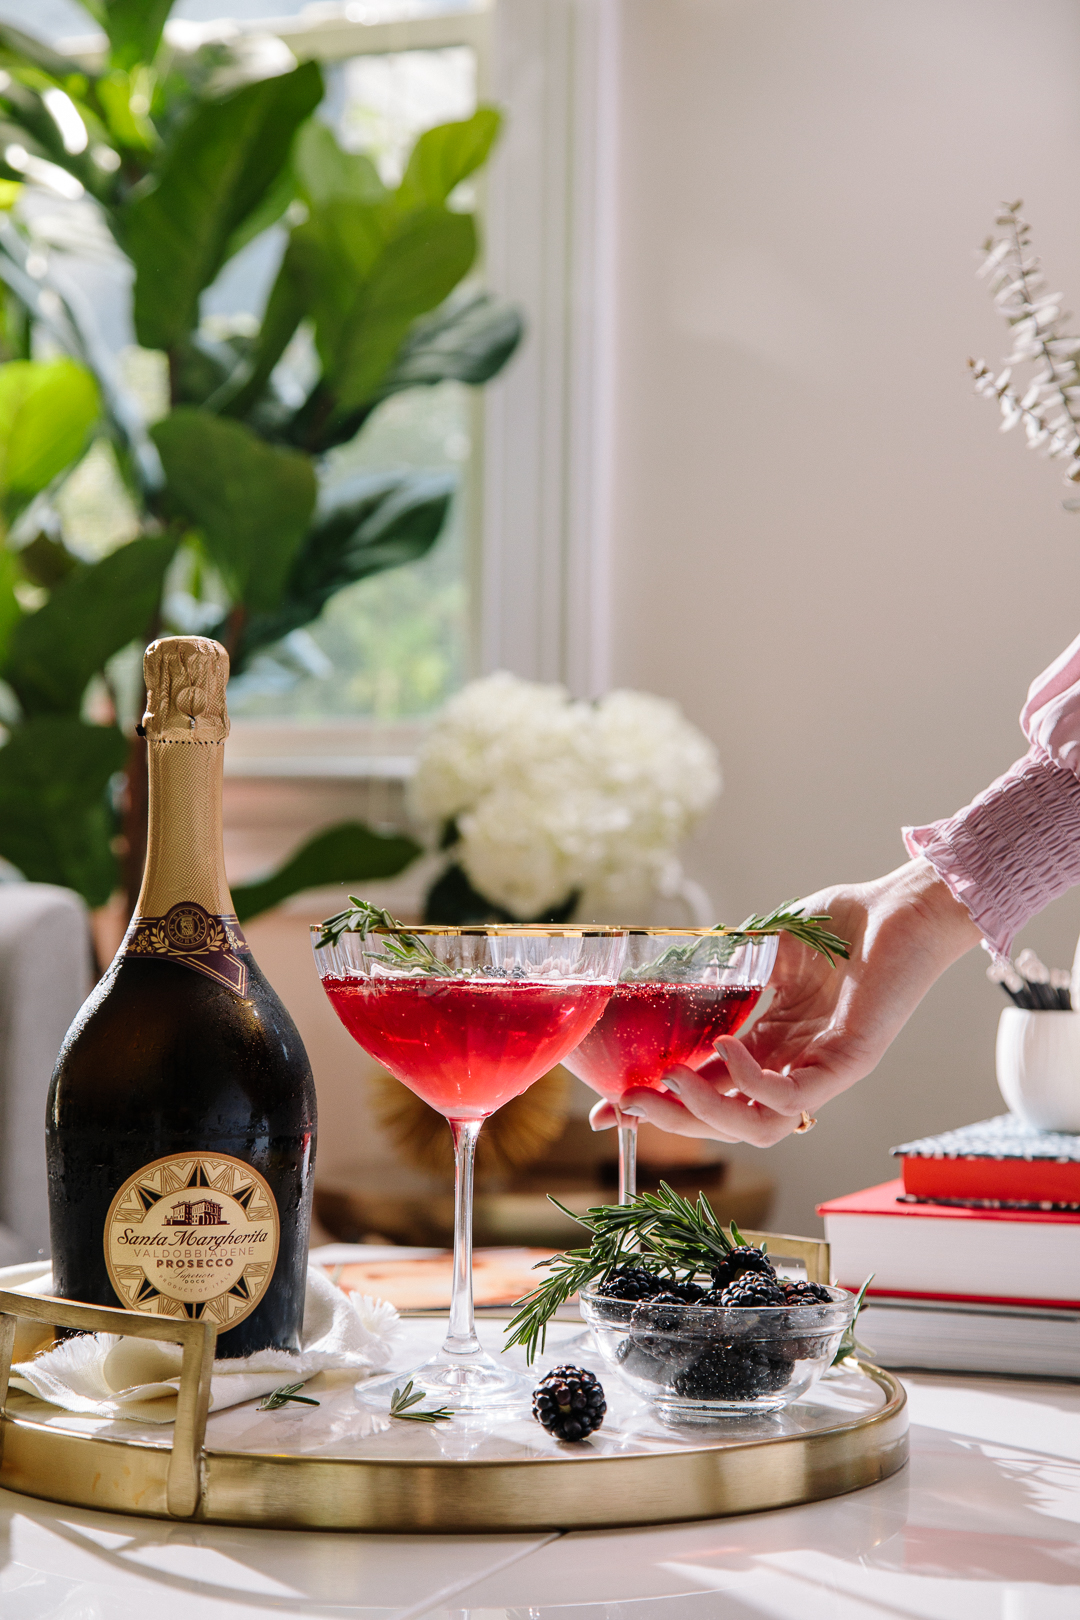 Making festive cocktails with Kerrie M Burke